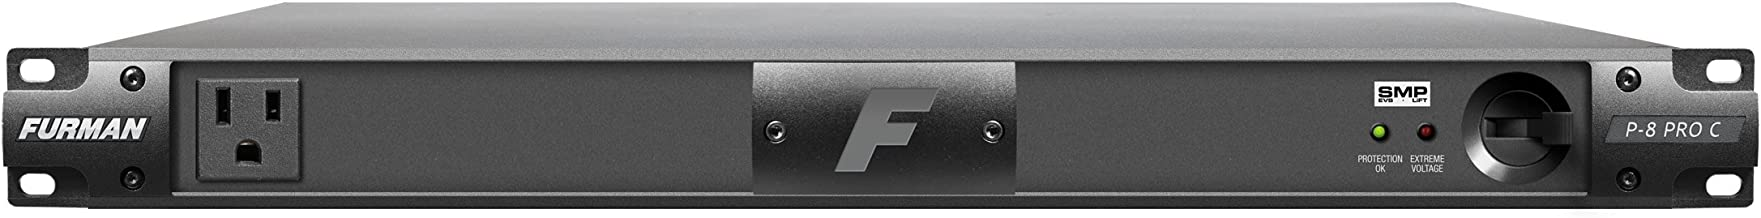 Furman P-8 PRO C Power Conditioner